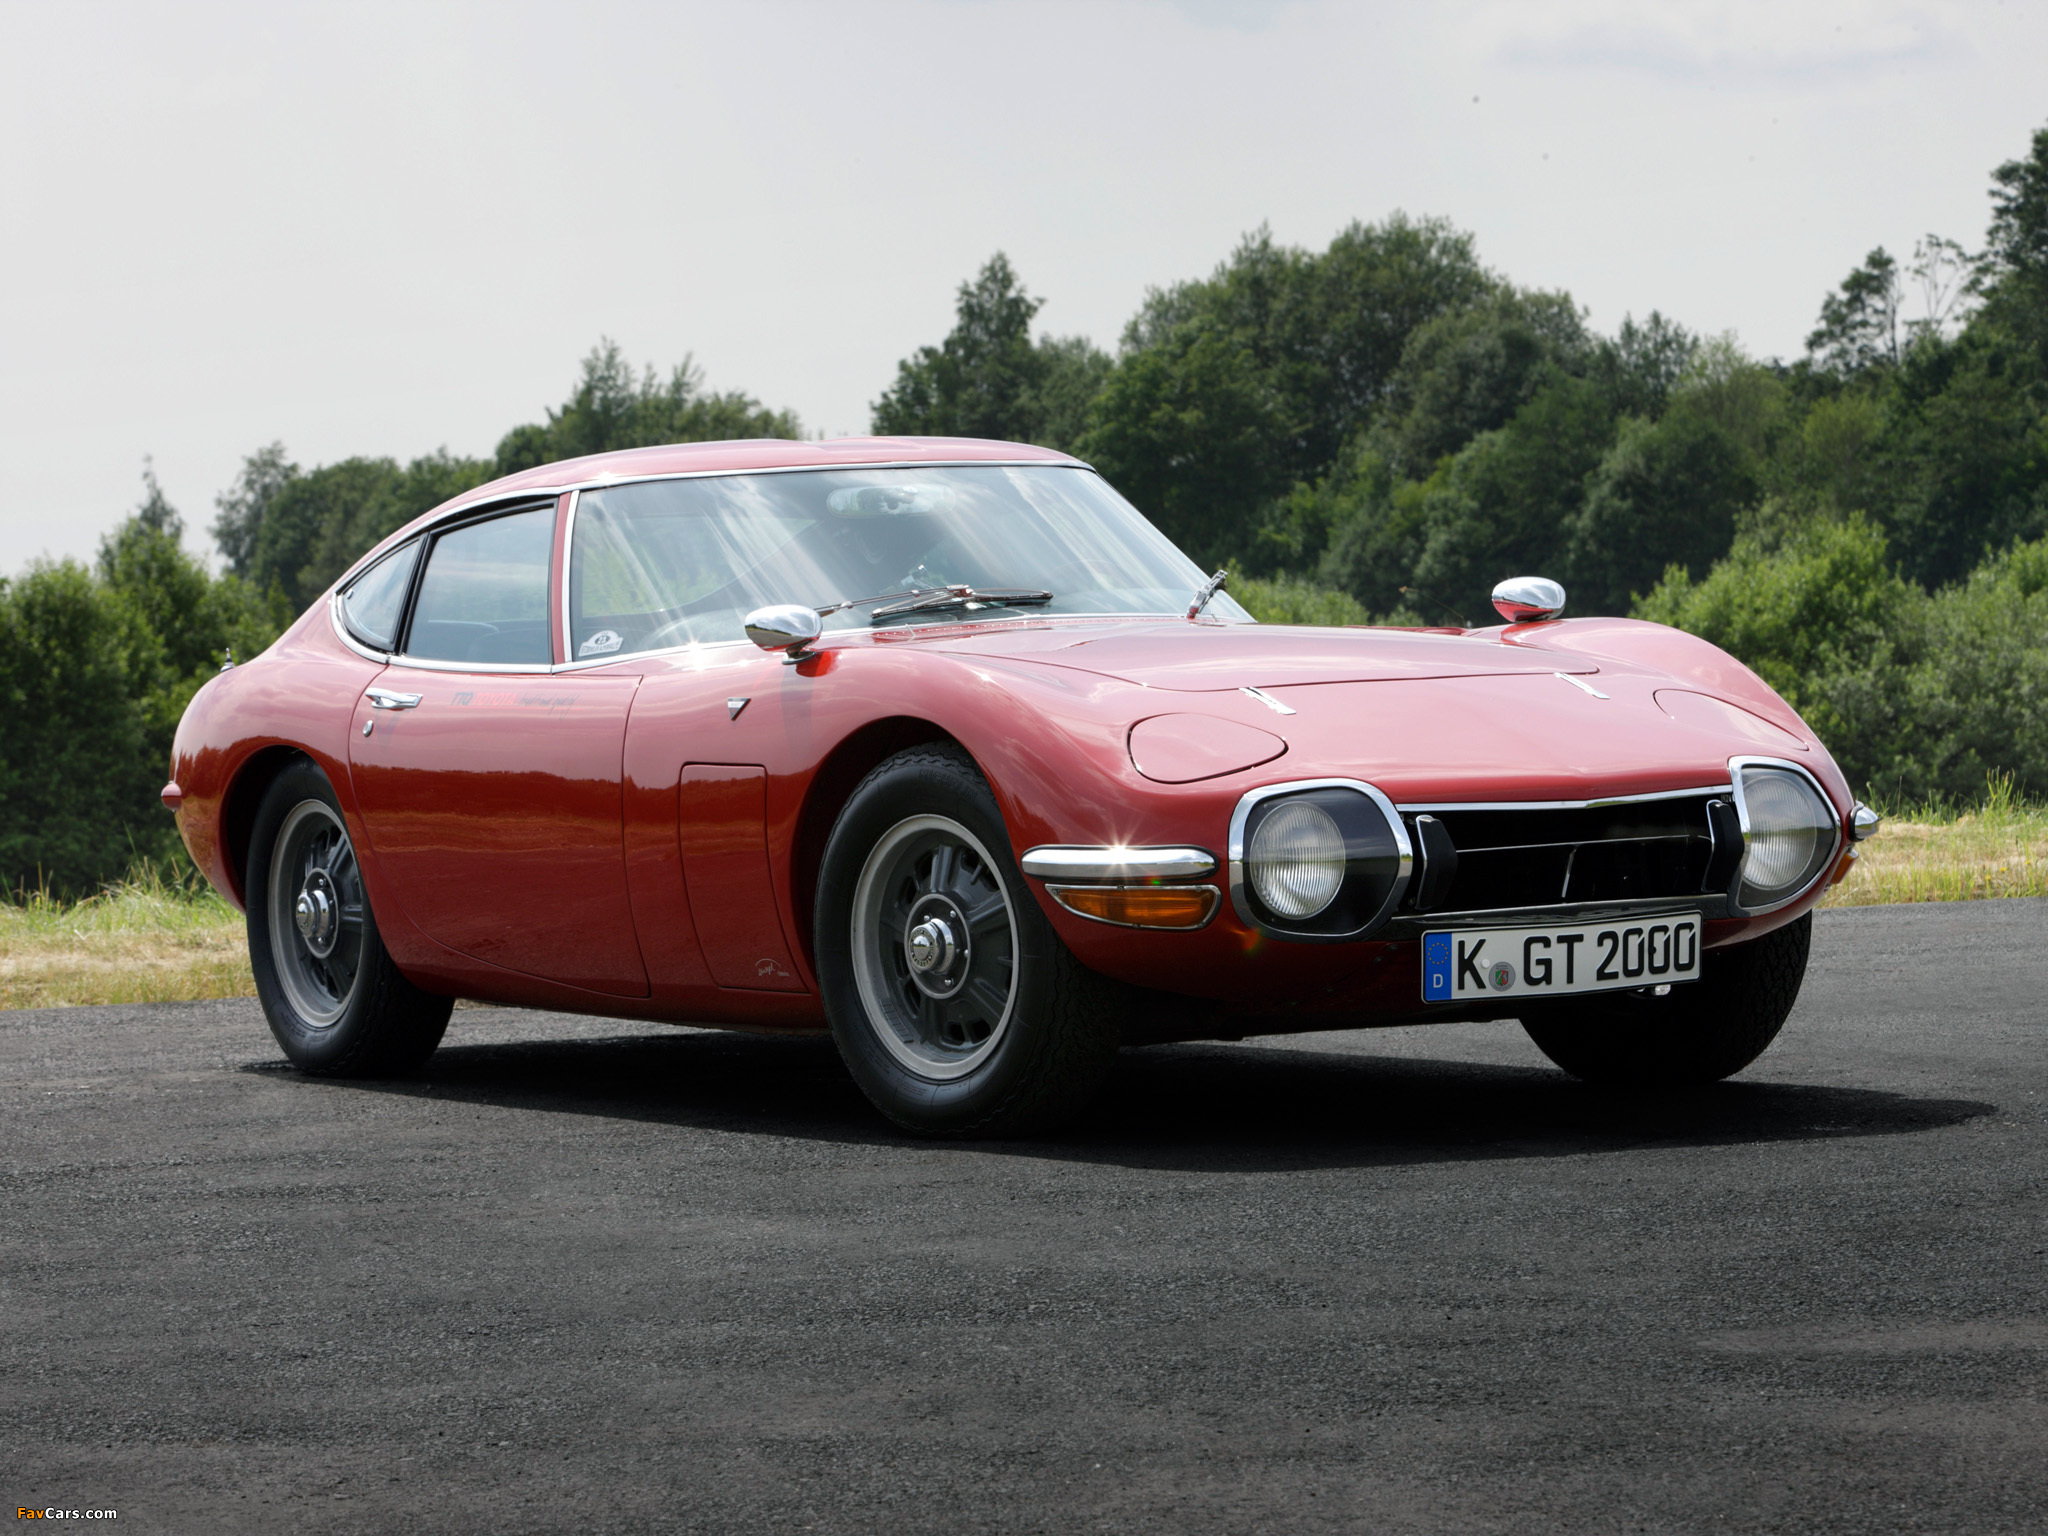 Toyota 2000gt Mf10 1967 70 Pictures 2048x1536